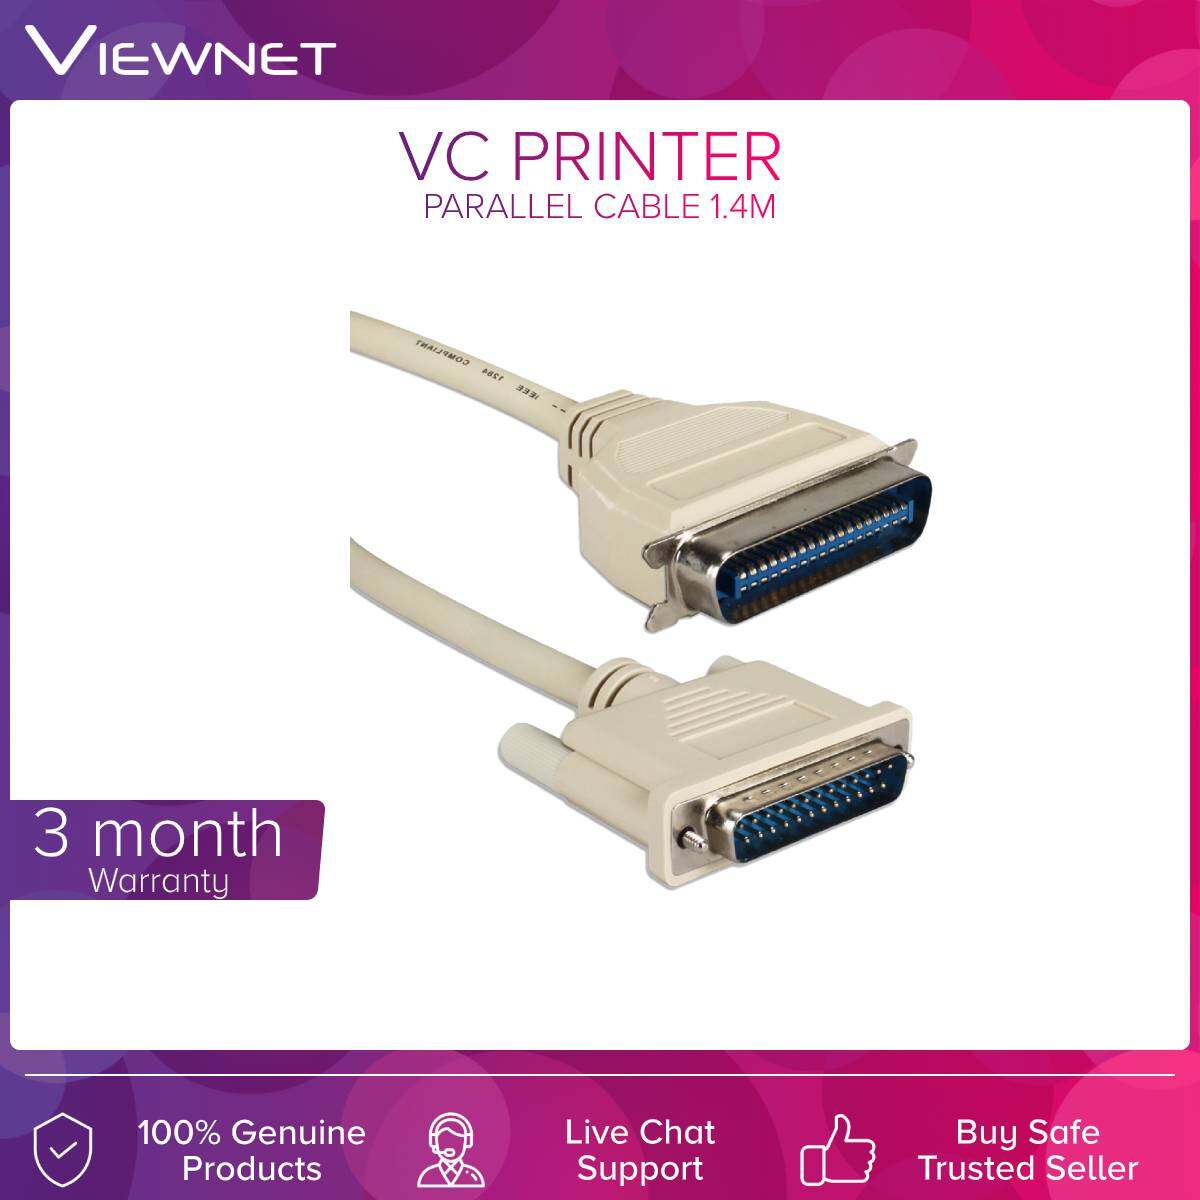 VC Printer Parallel Cable 1.4M